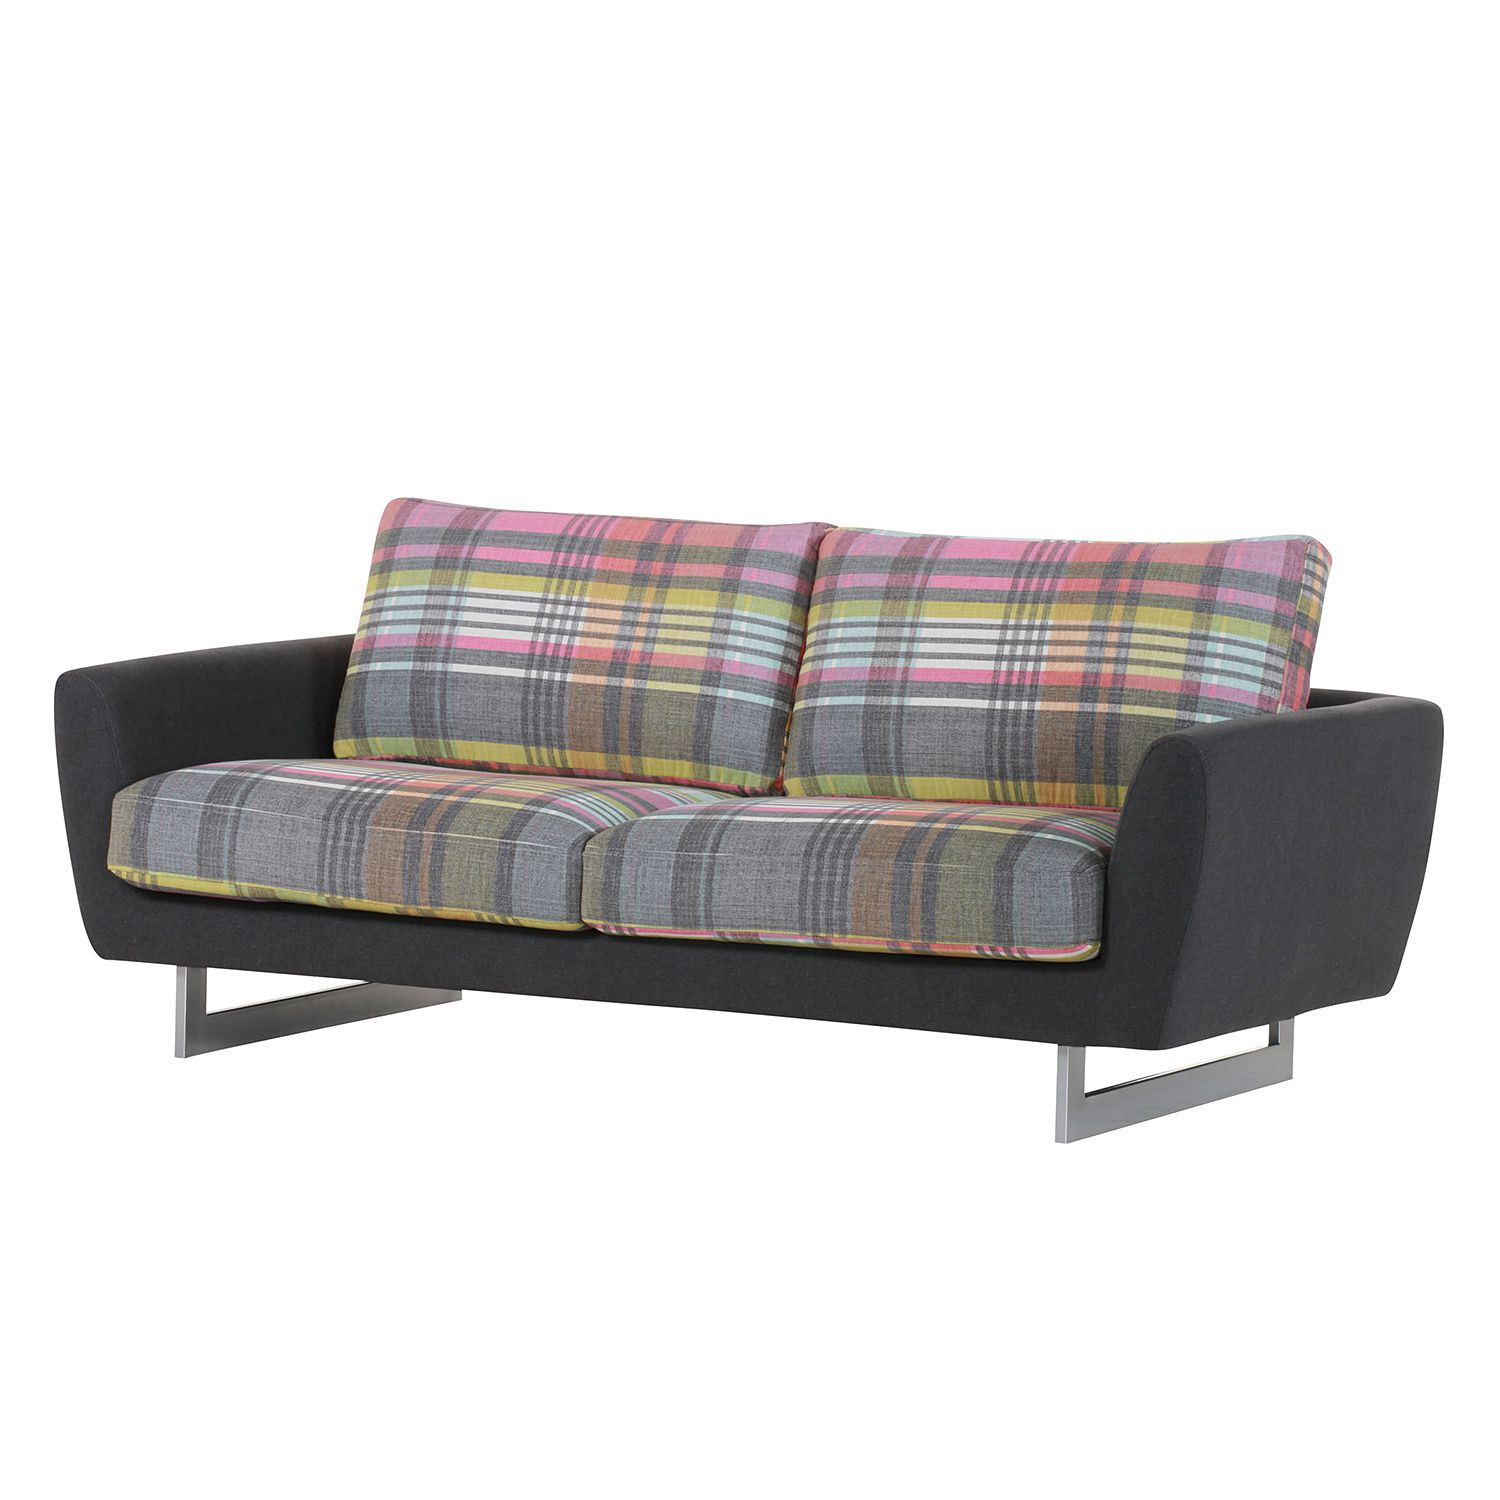 sofa ayanka 2sitzer webstoff multicolor roomscape. Black Bedroom Furniture Sets. Home Design Ideas